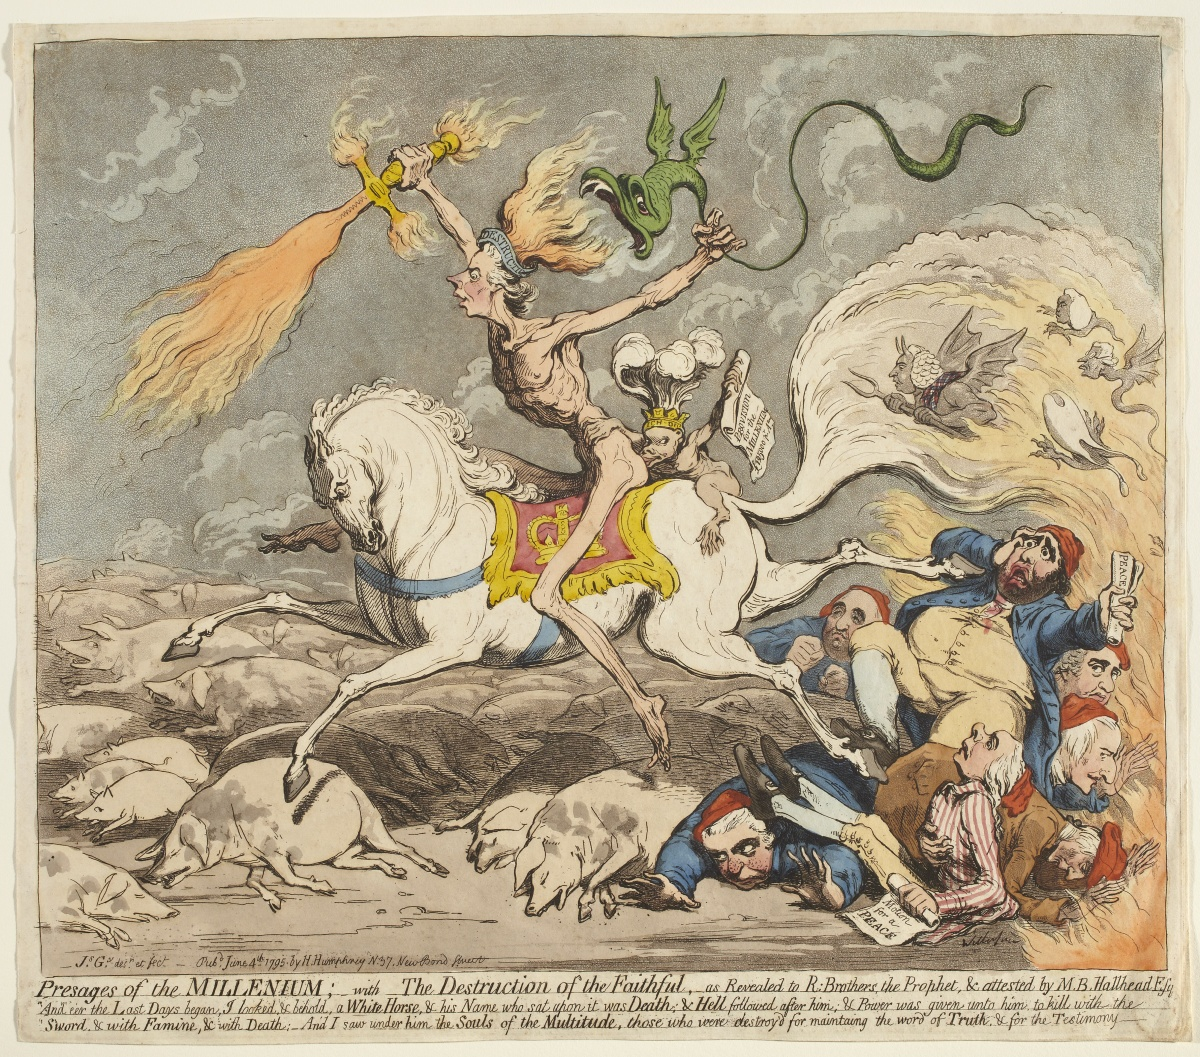 James Gillray, Presages of the Millenium